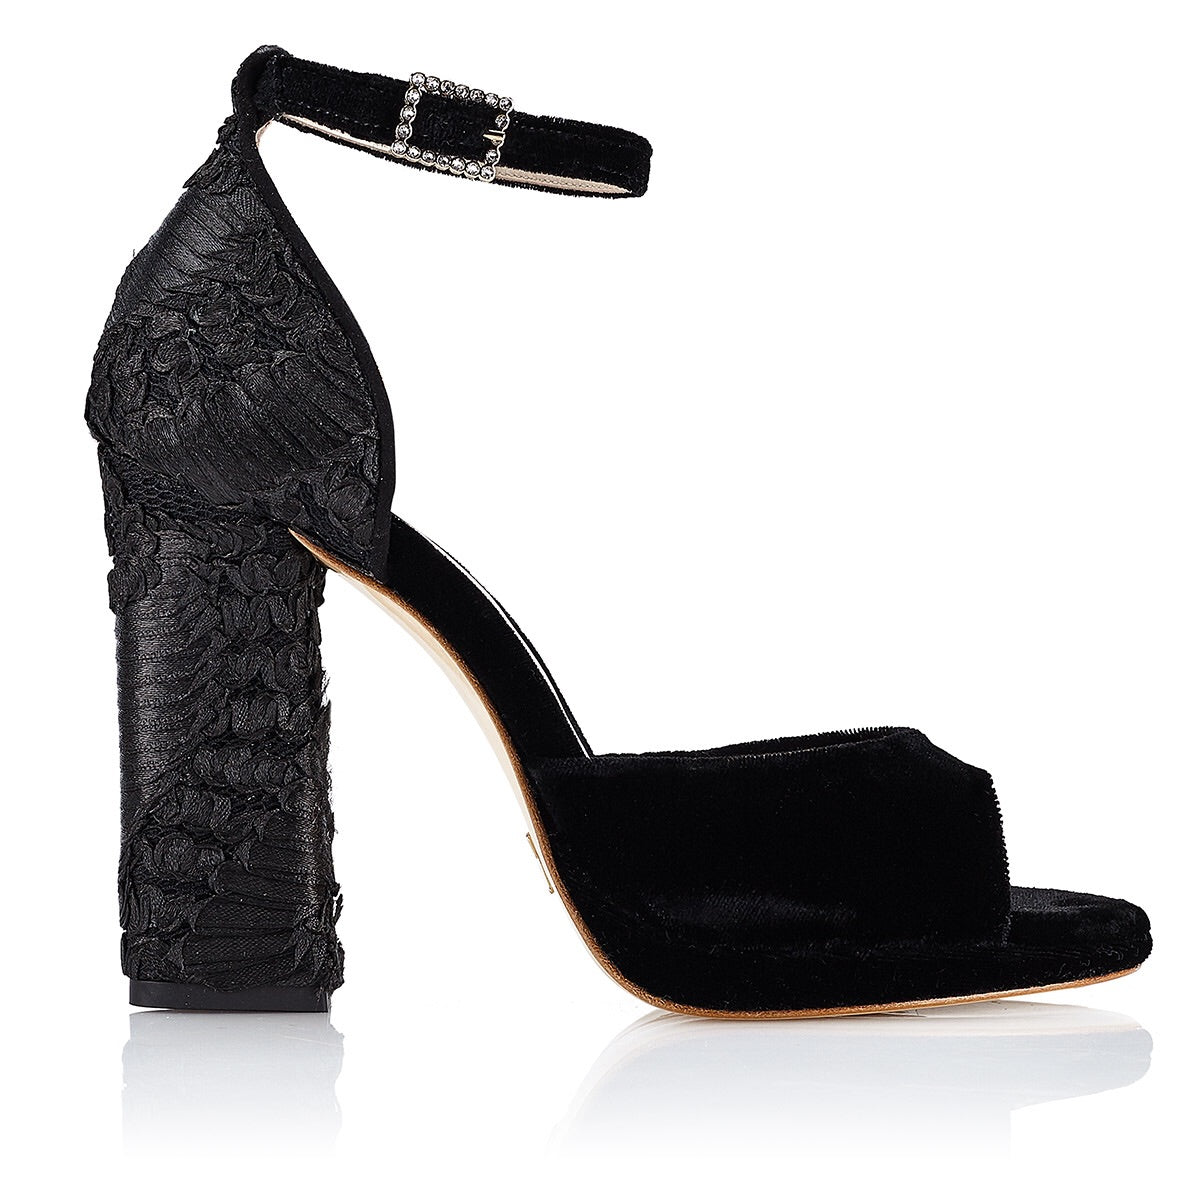 BLACK CELESTINE BRACELET SANDAL ( 10 cm with platform ) - Just-ENE